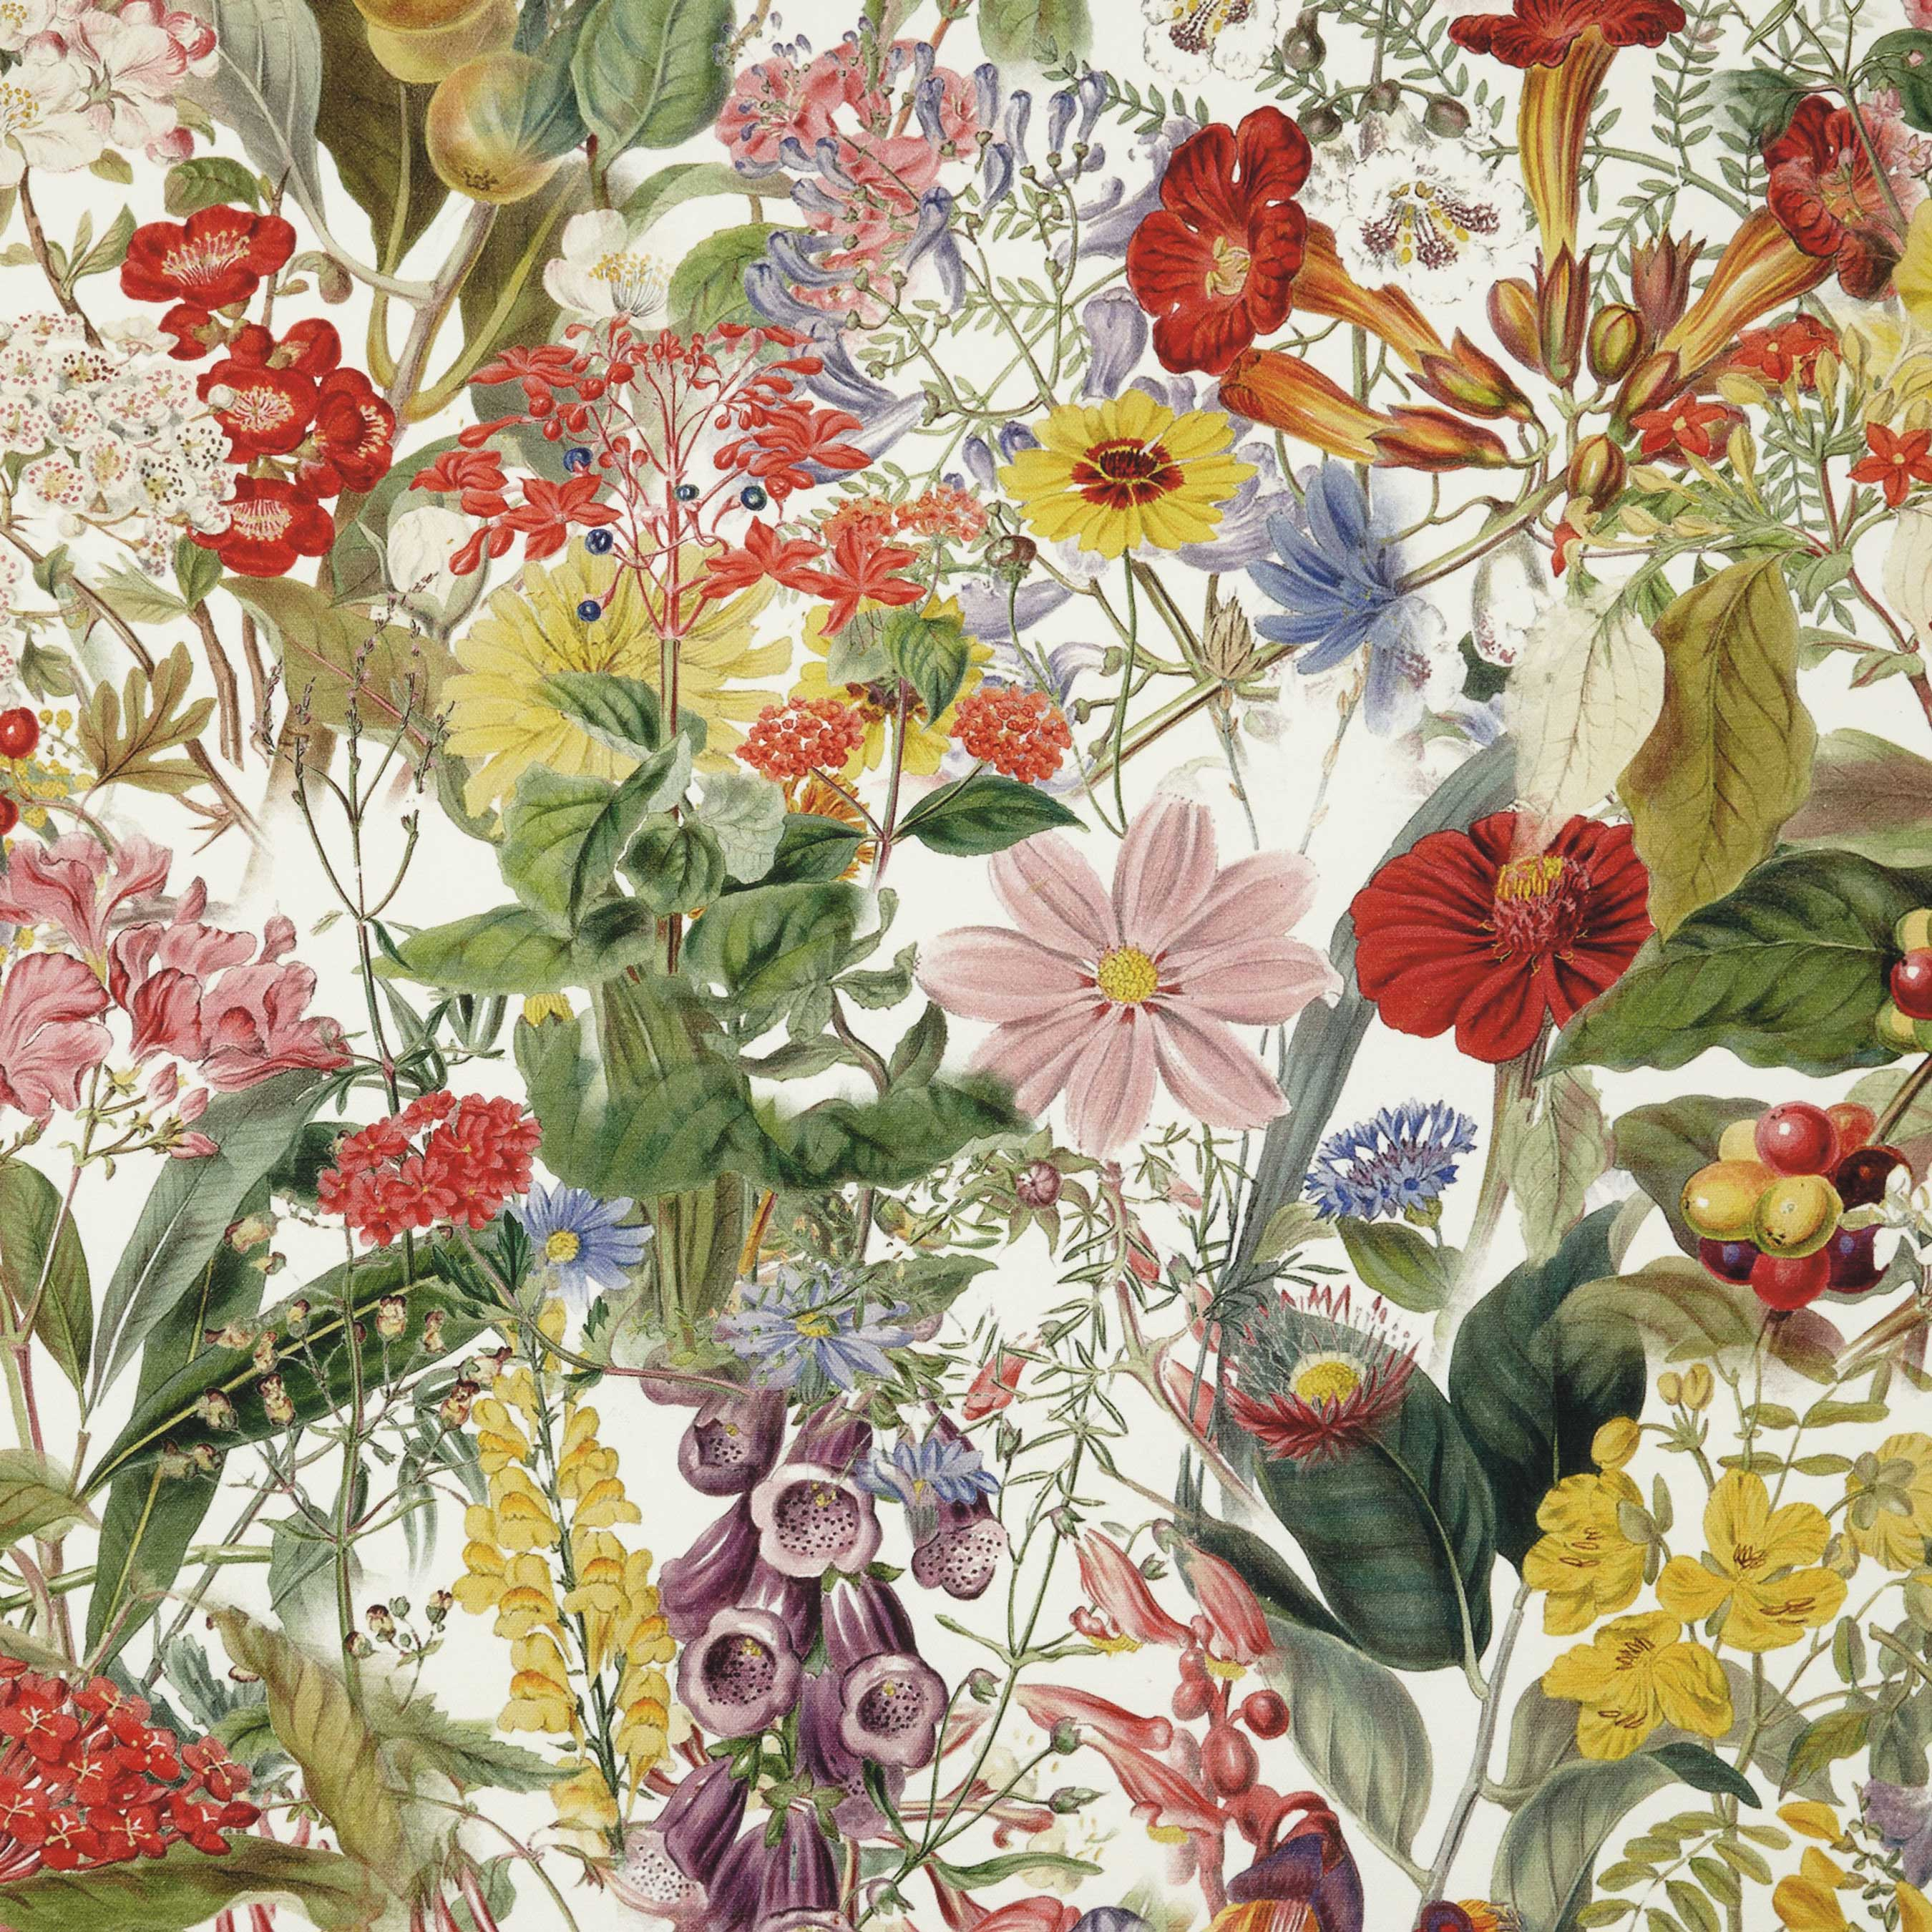 floral fabric by John Lewis